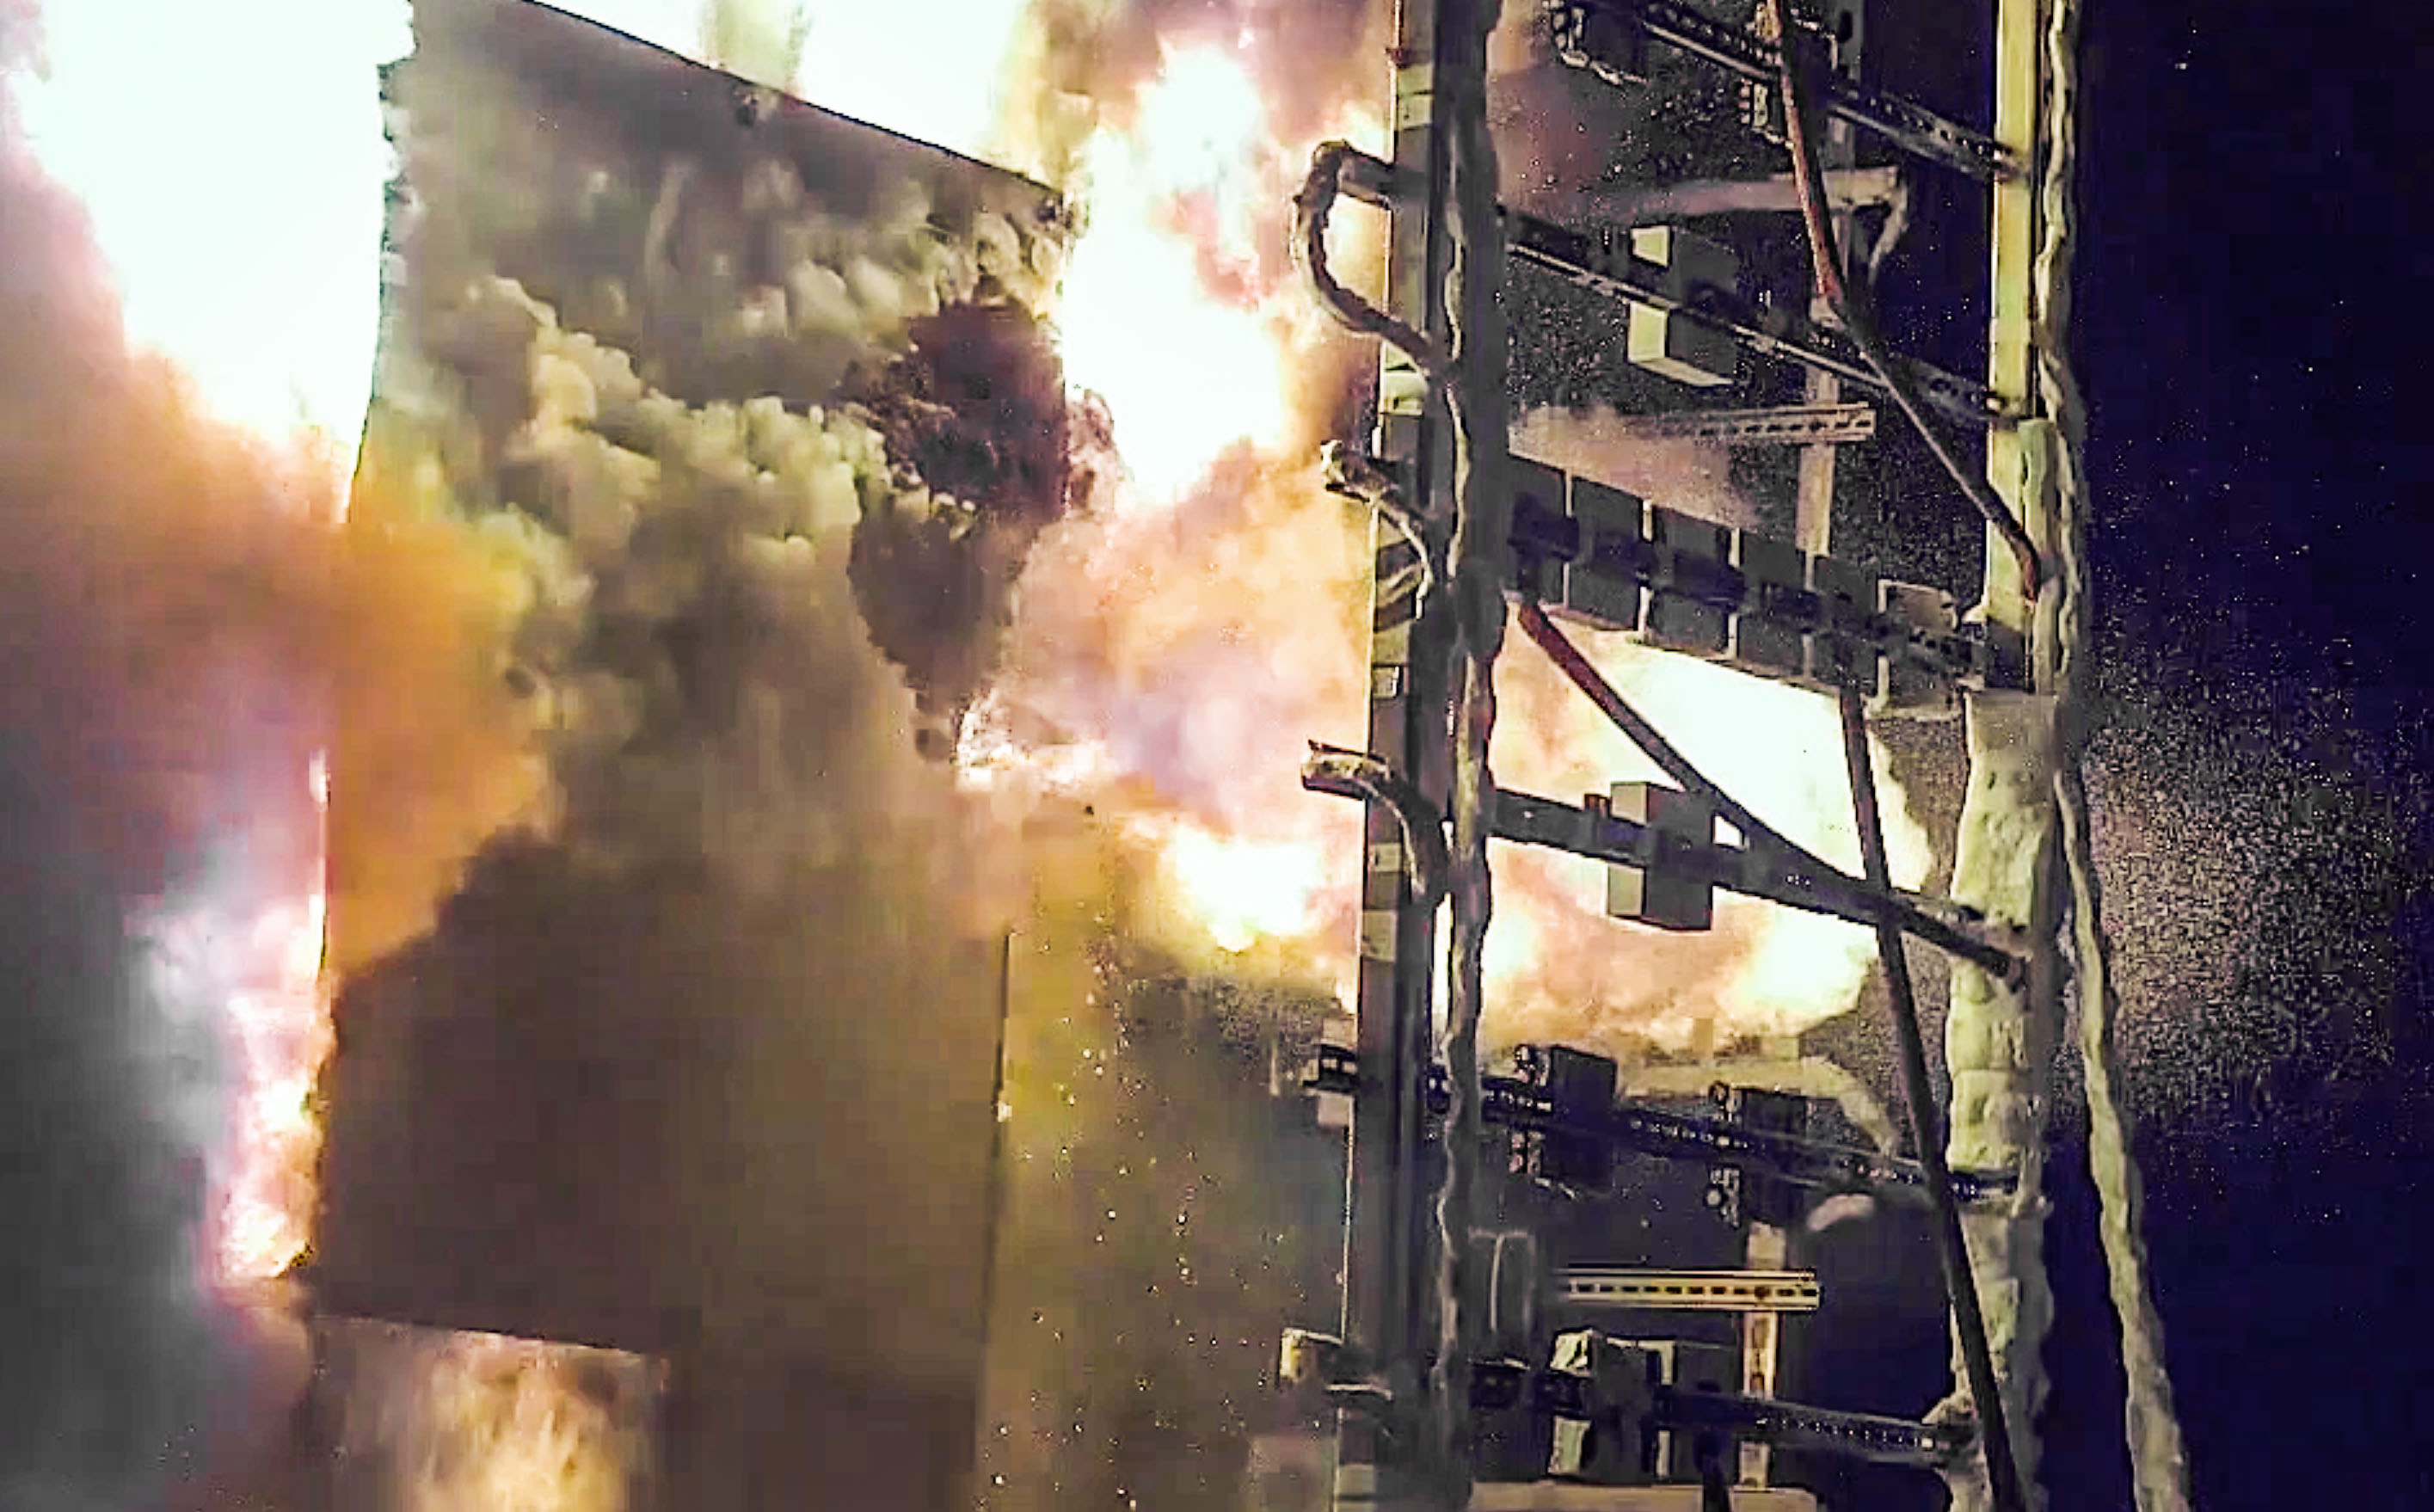 Newswise: High-speed fire footage reveals key insights for power plant safety